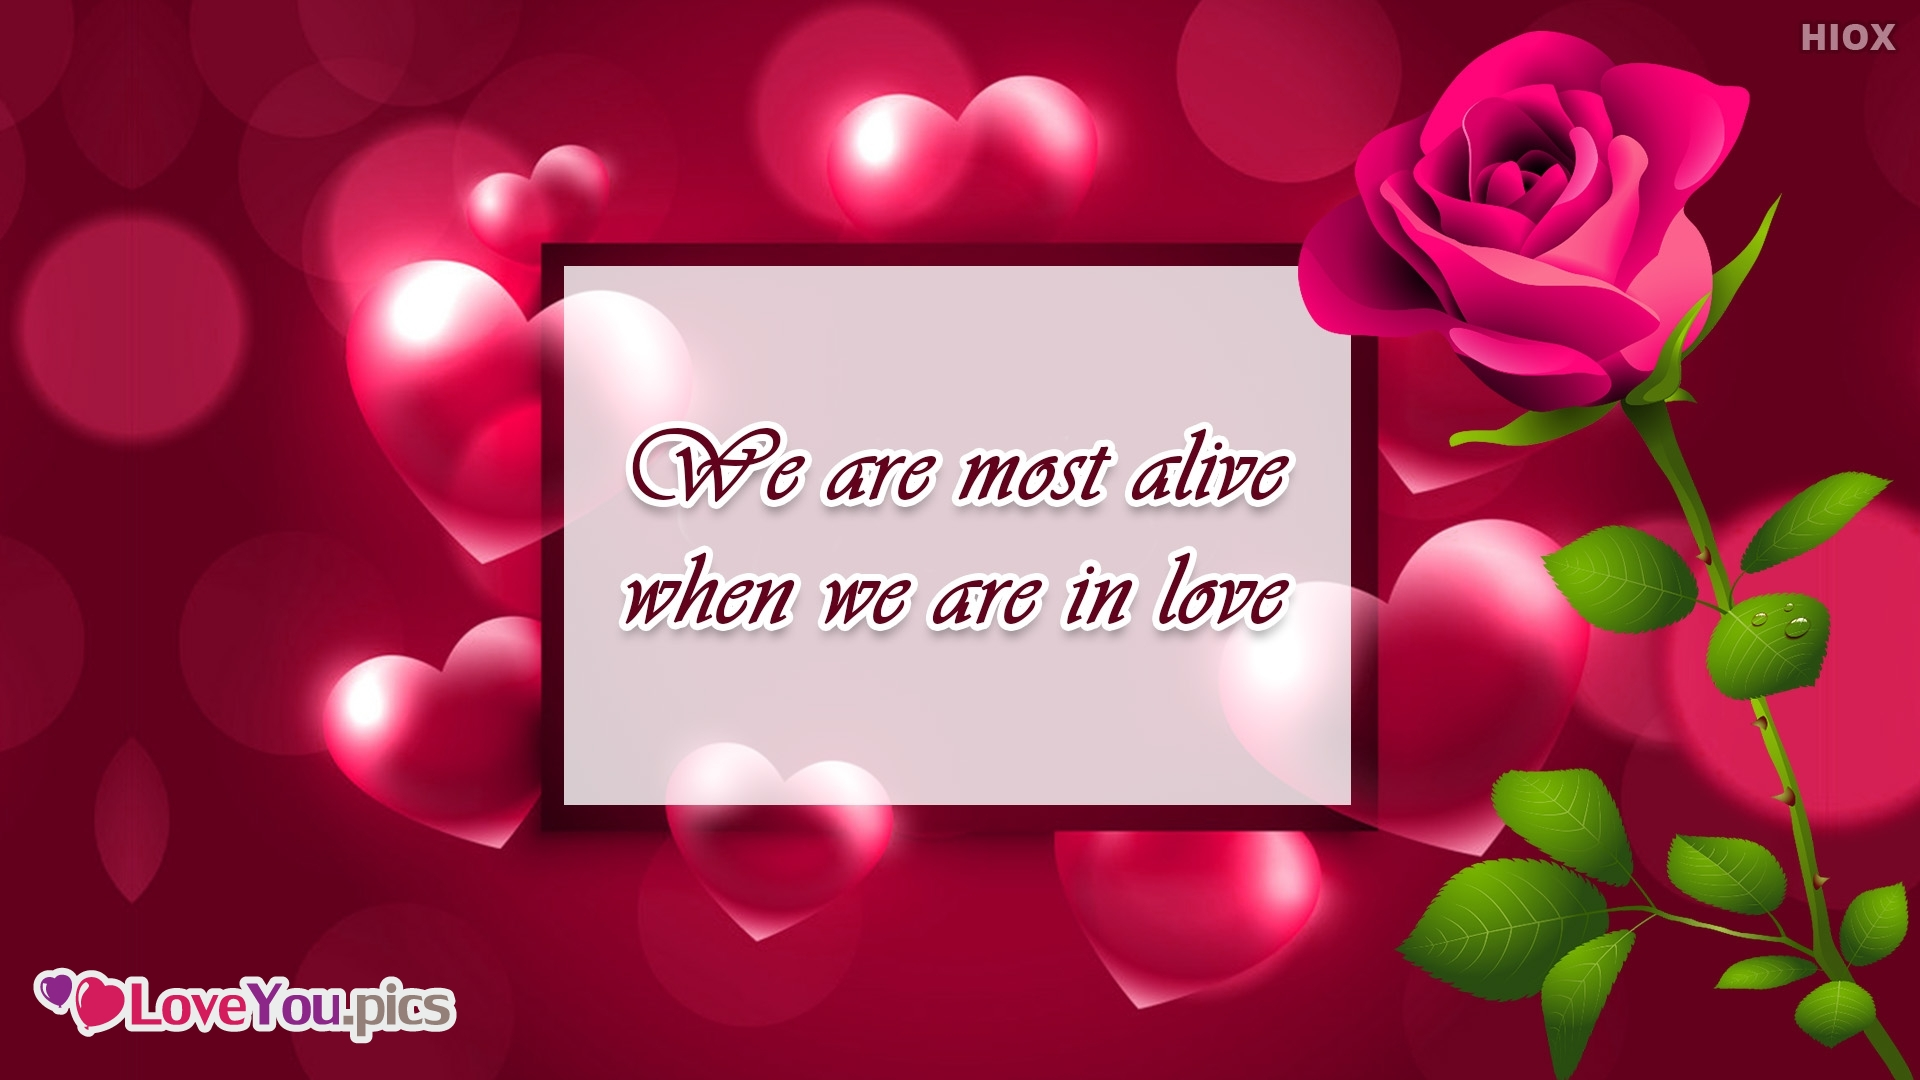 We Are Most Alive When We Are In Love.